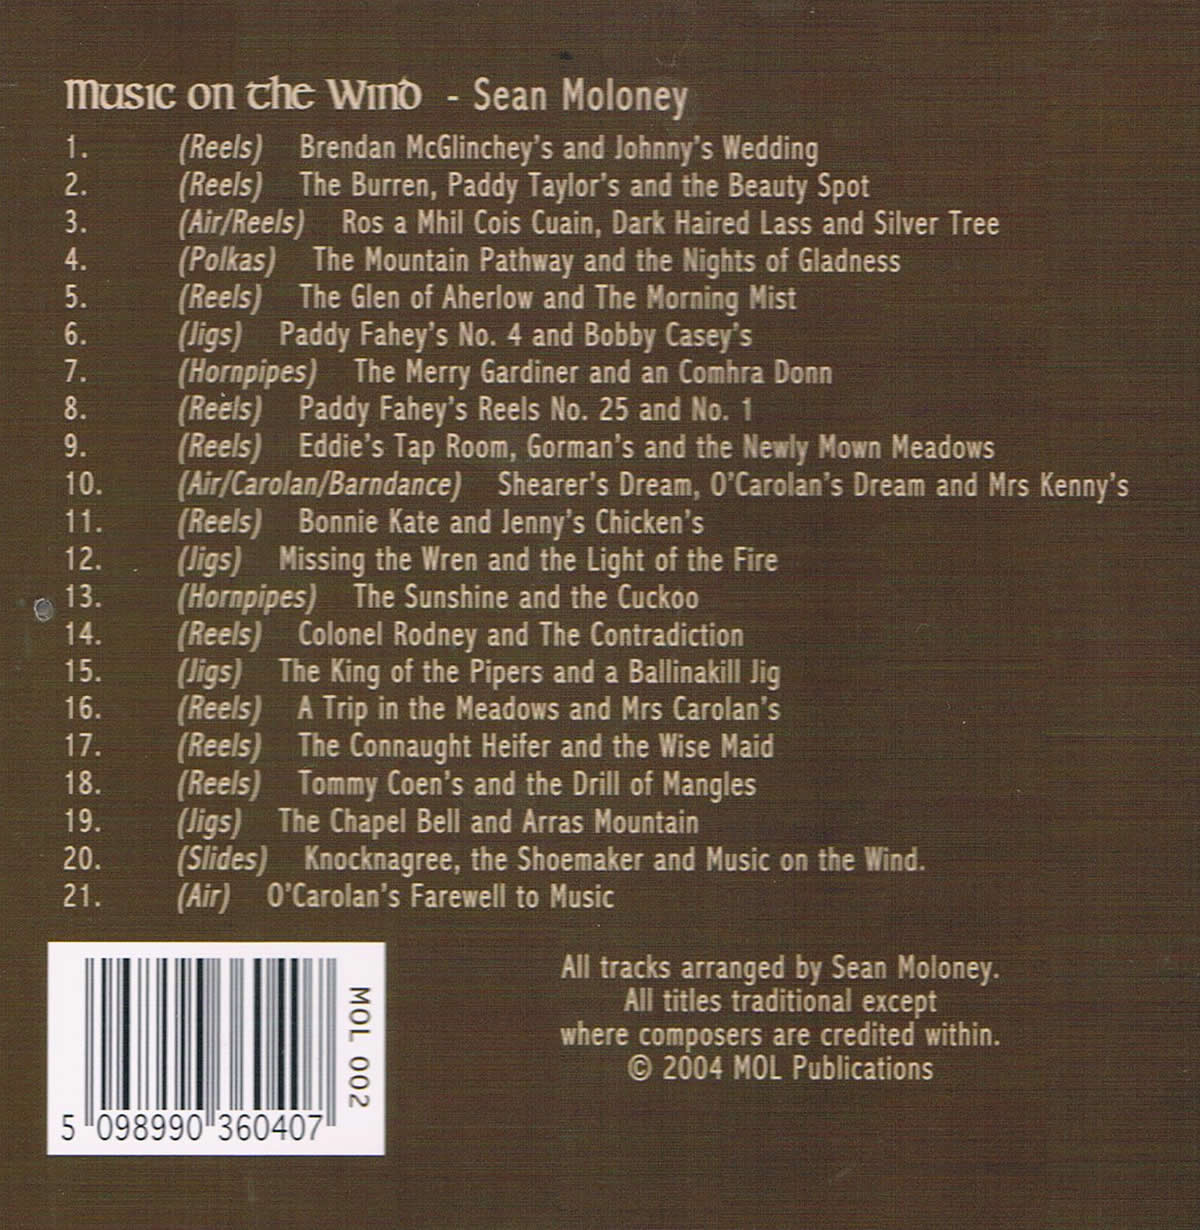 Music on the Wind Tracklist